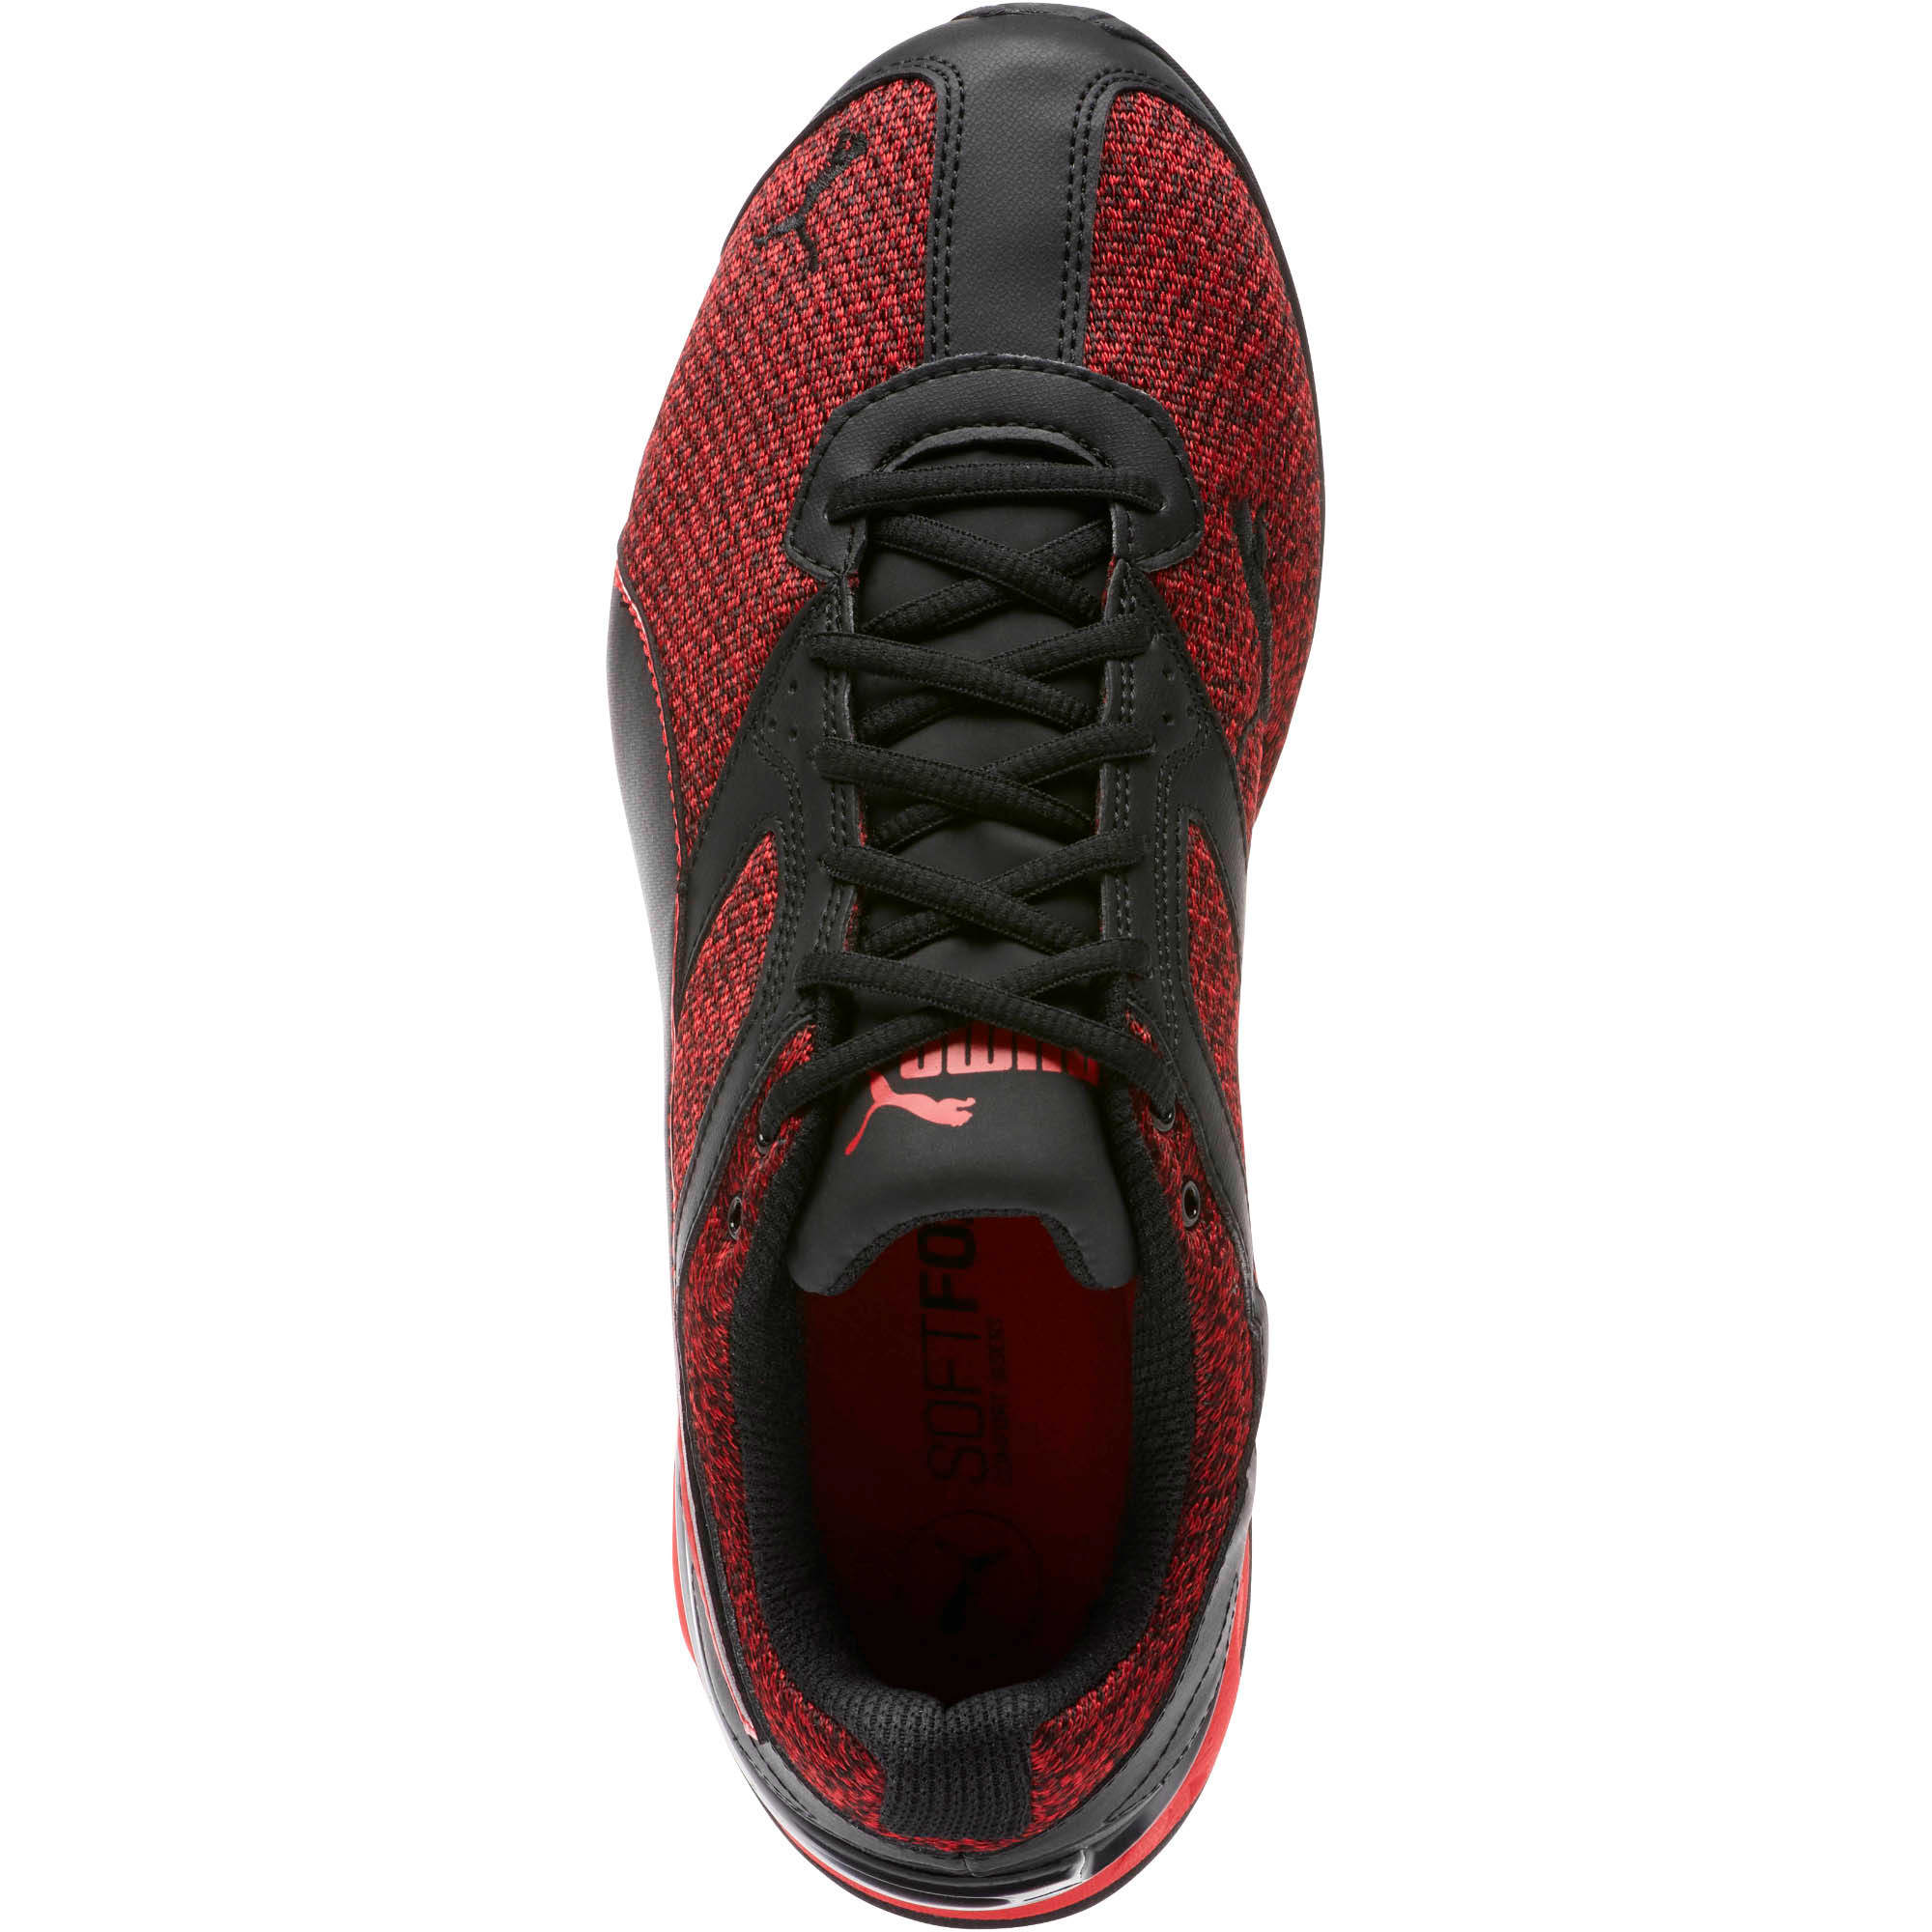 Thumbnail 5 of Tazon 6 Knit Men's Sneakers, Puma Black-Toreador, medium